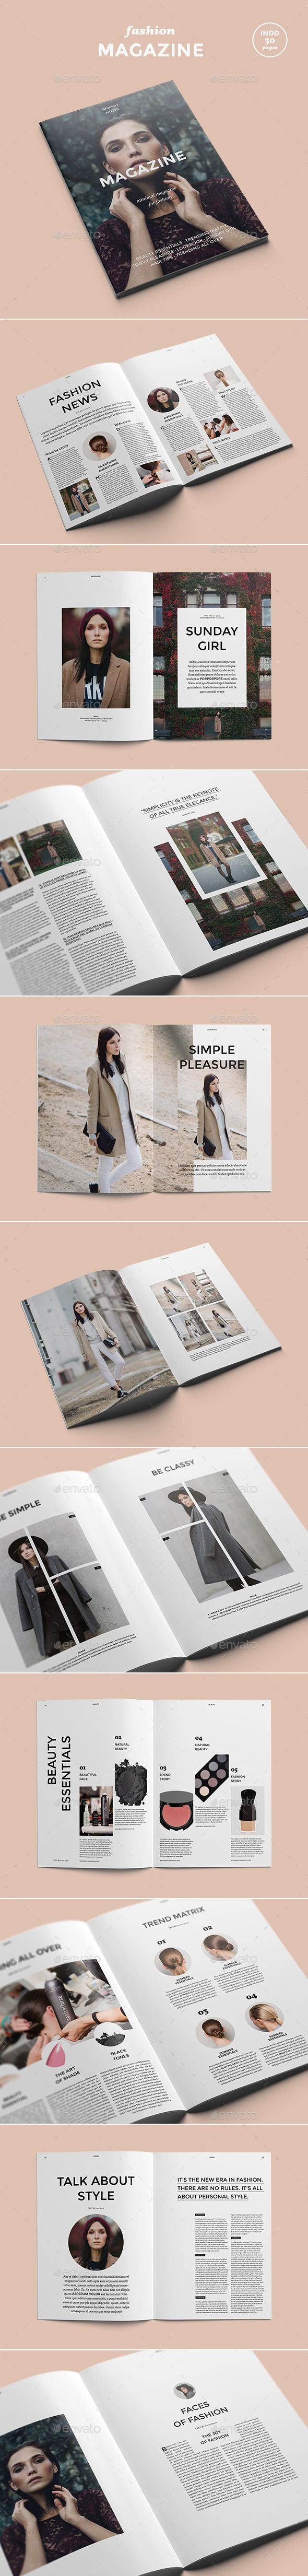 Minimalist and clean 30 pages magazine template.   See magazine page by page    FEATURES:   30 pages of magazine layout   Character and Paragraph styles  Automatic page numbering  Text and images p...